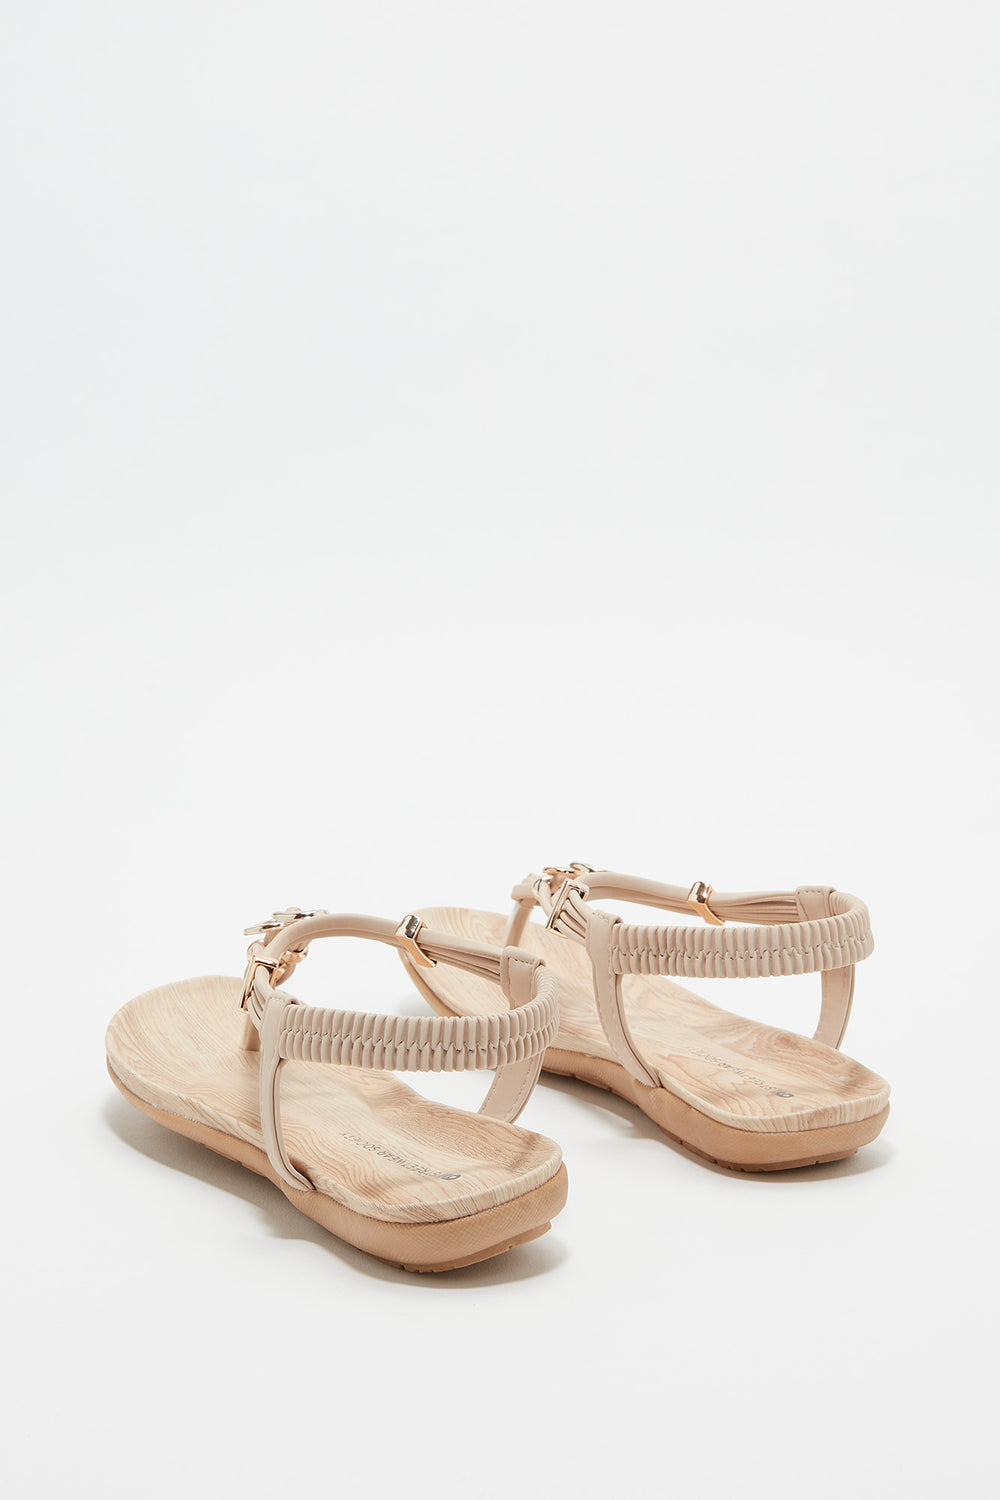 Heart Bead Comfort Sandal Natural